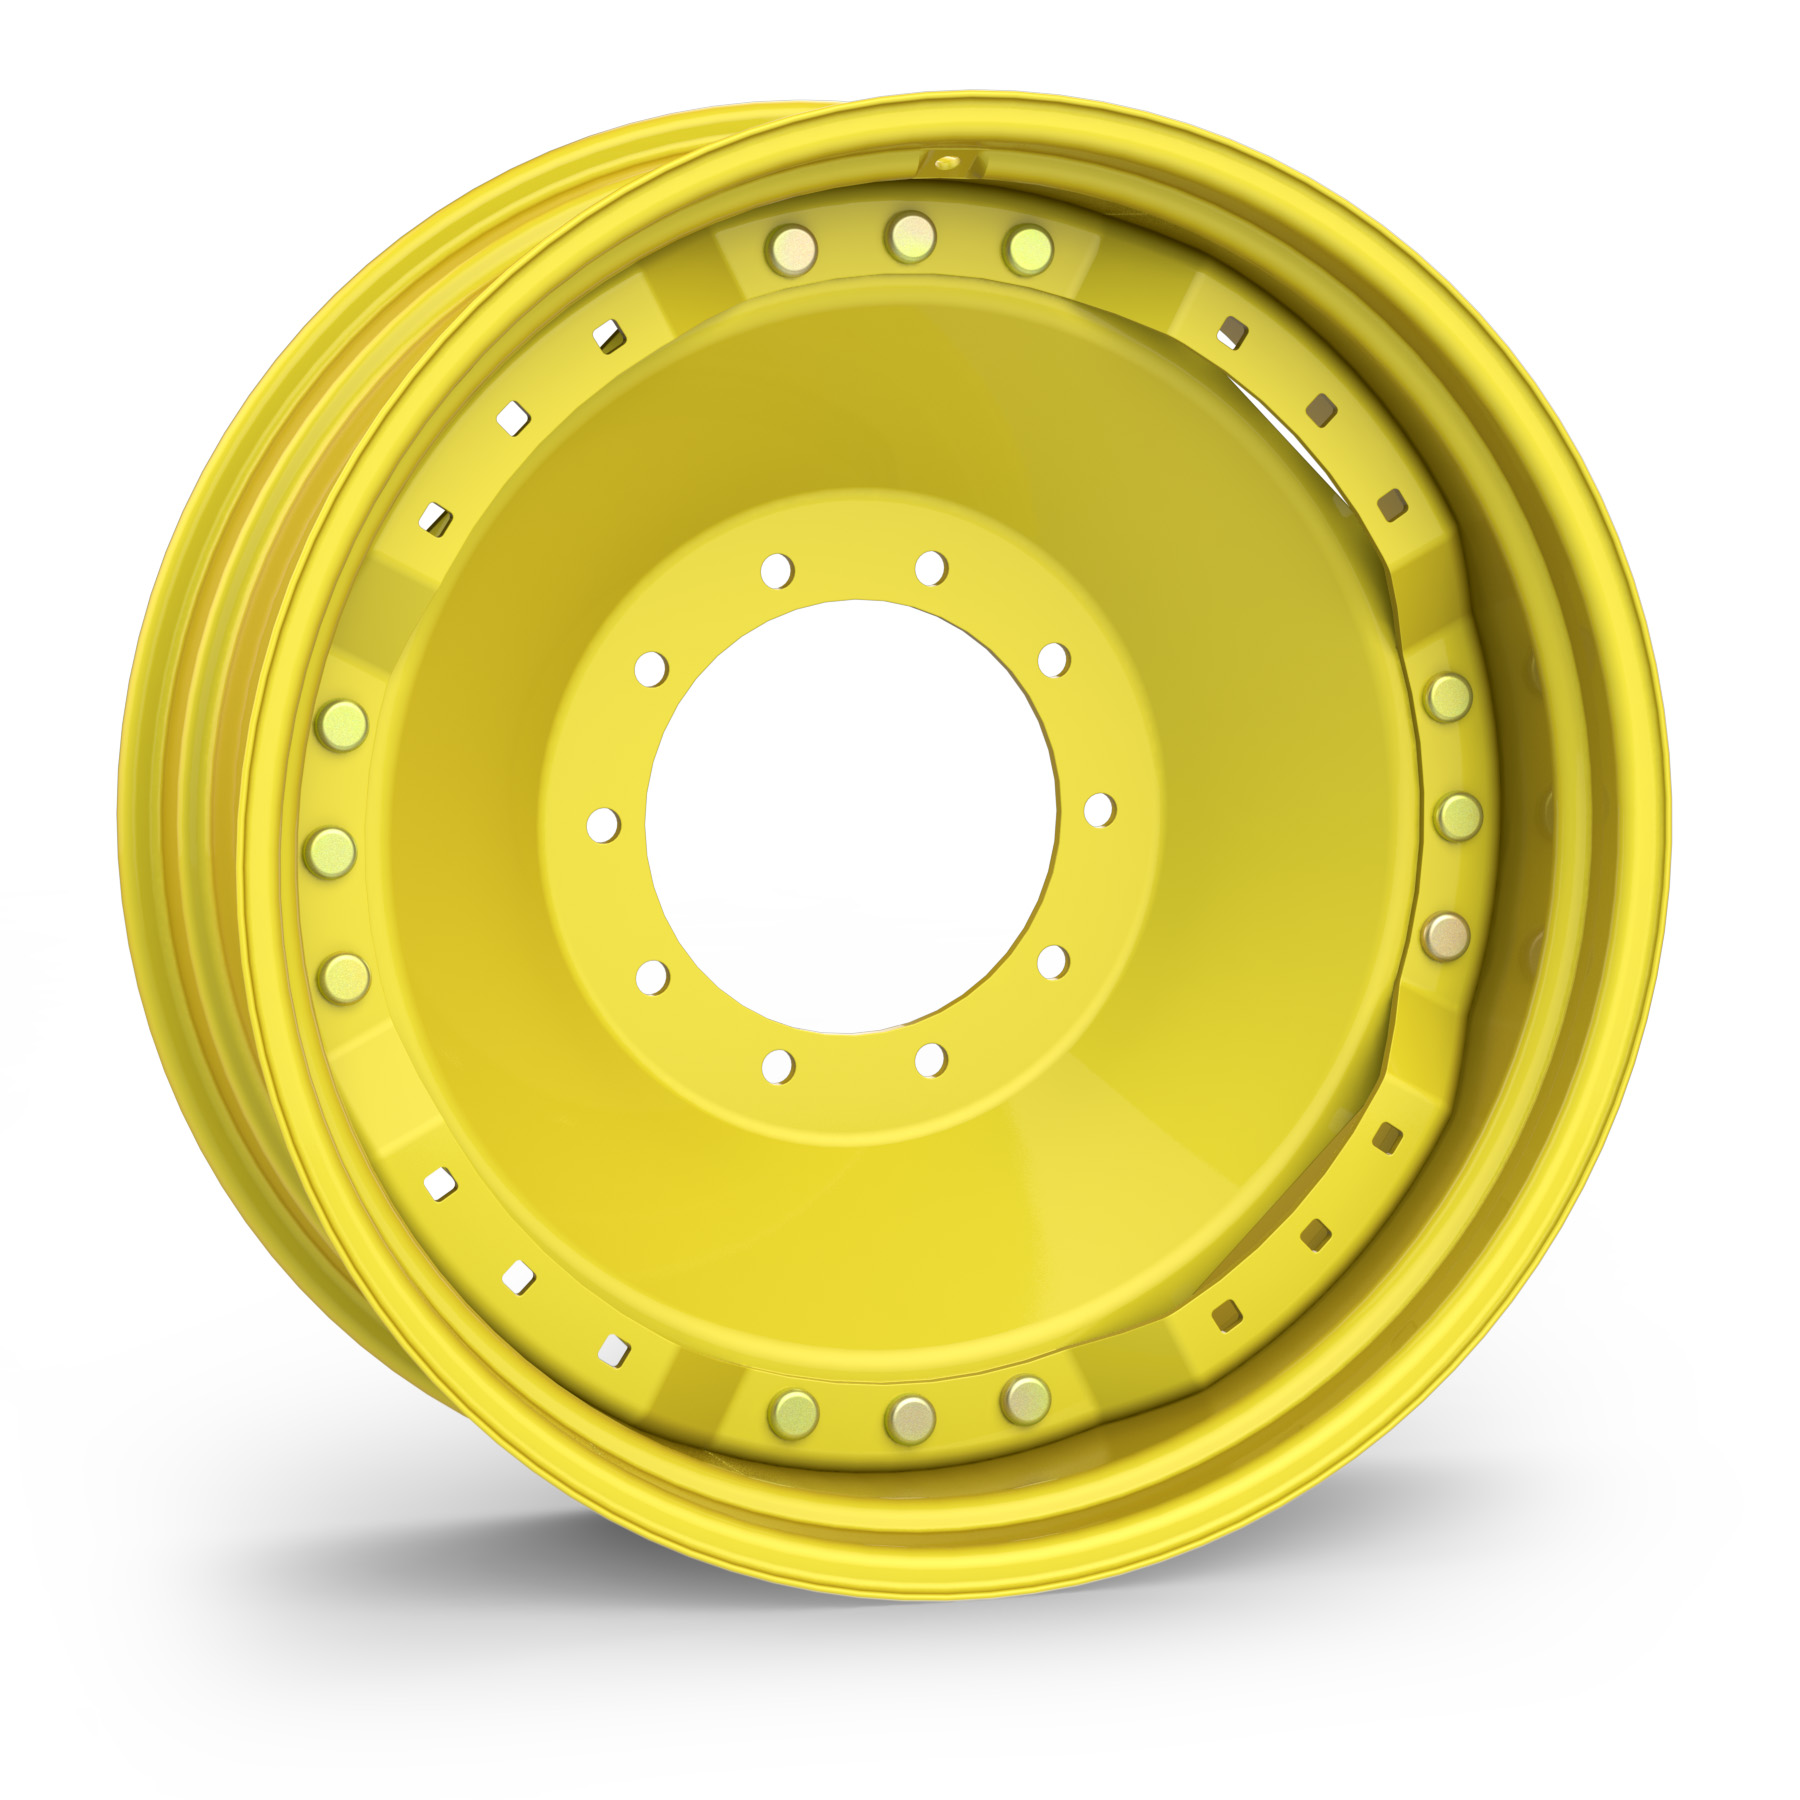 Unverferth Wheel Spacers : Mfwd tractor front duals unverferth wheel products